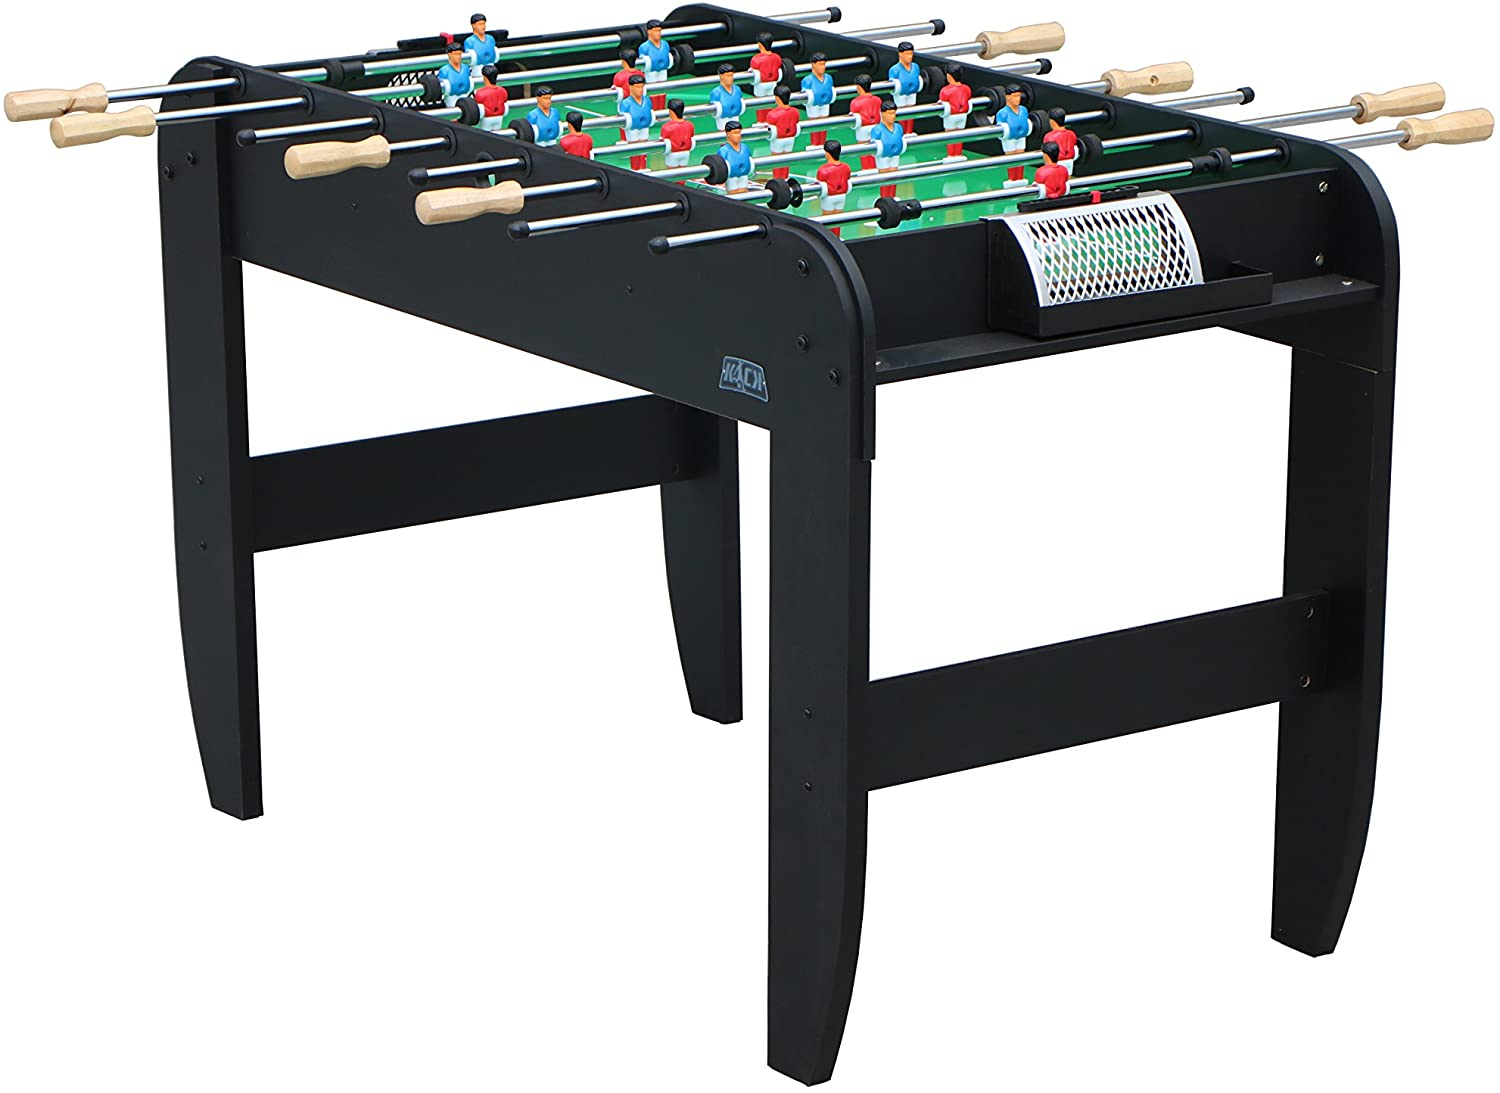 KICK Liberty 48-inch Black Foosball Table